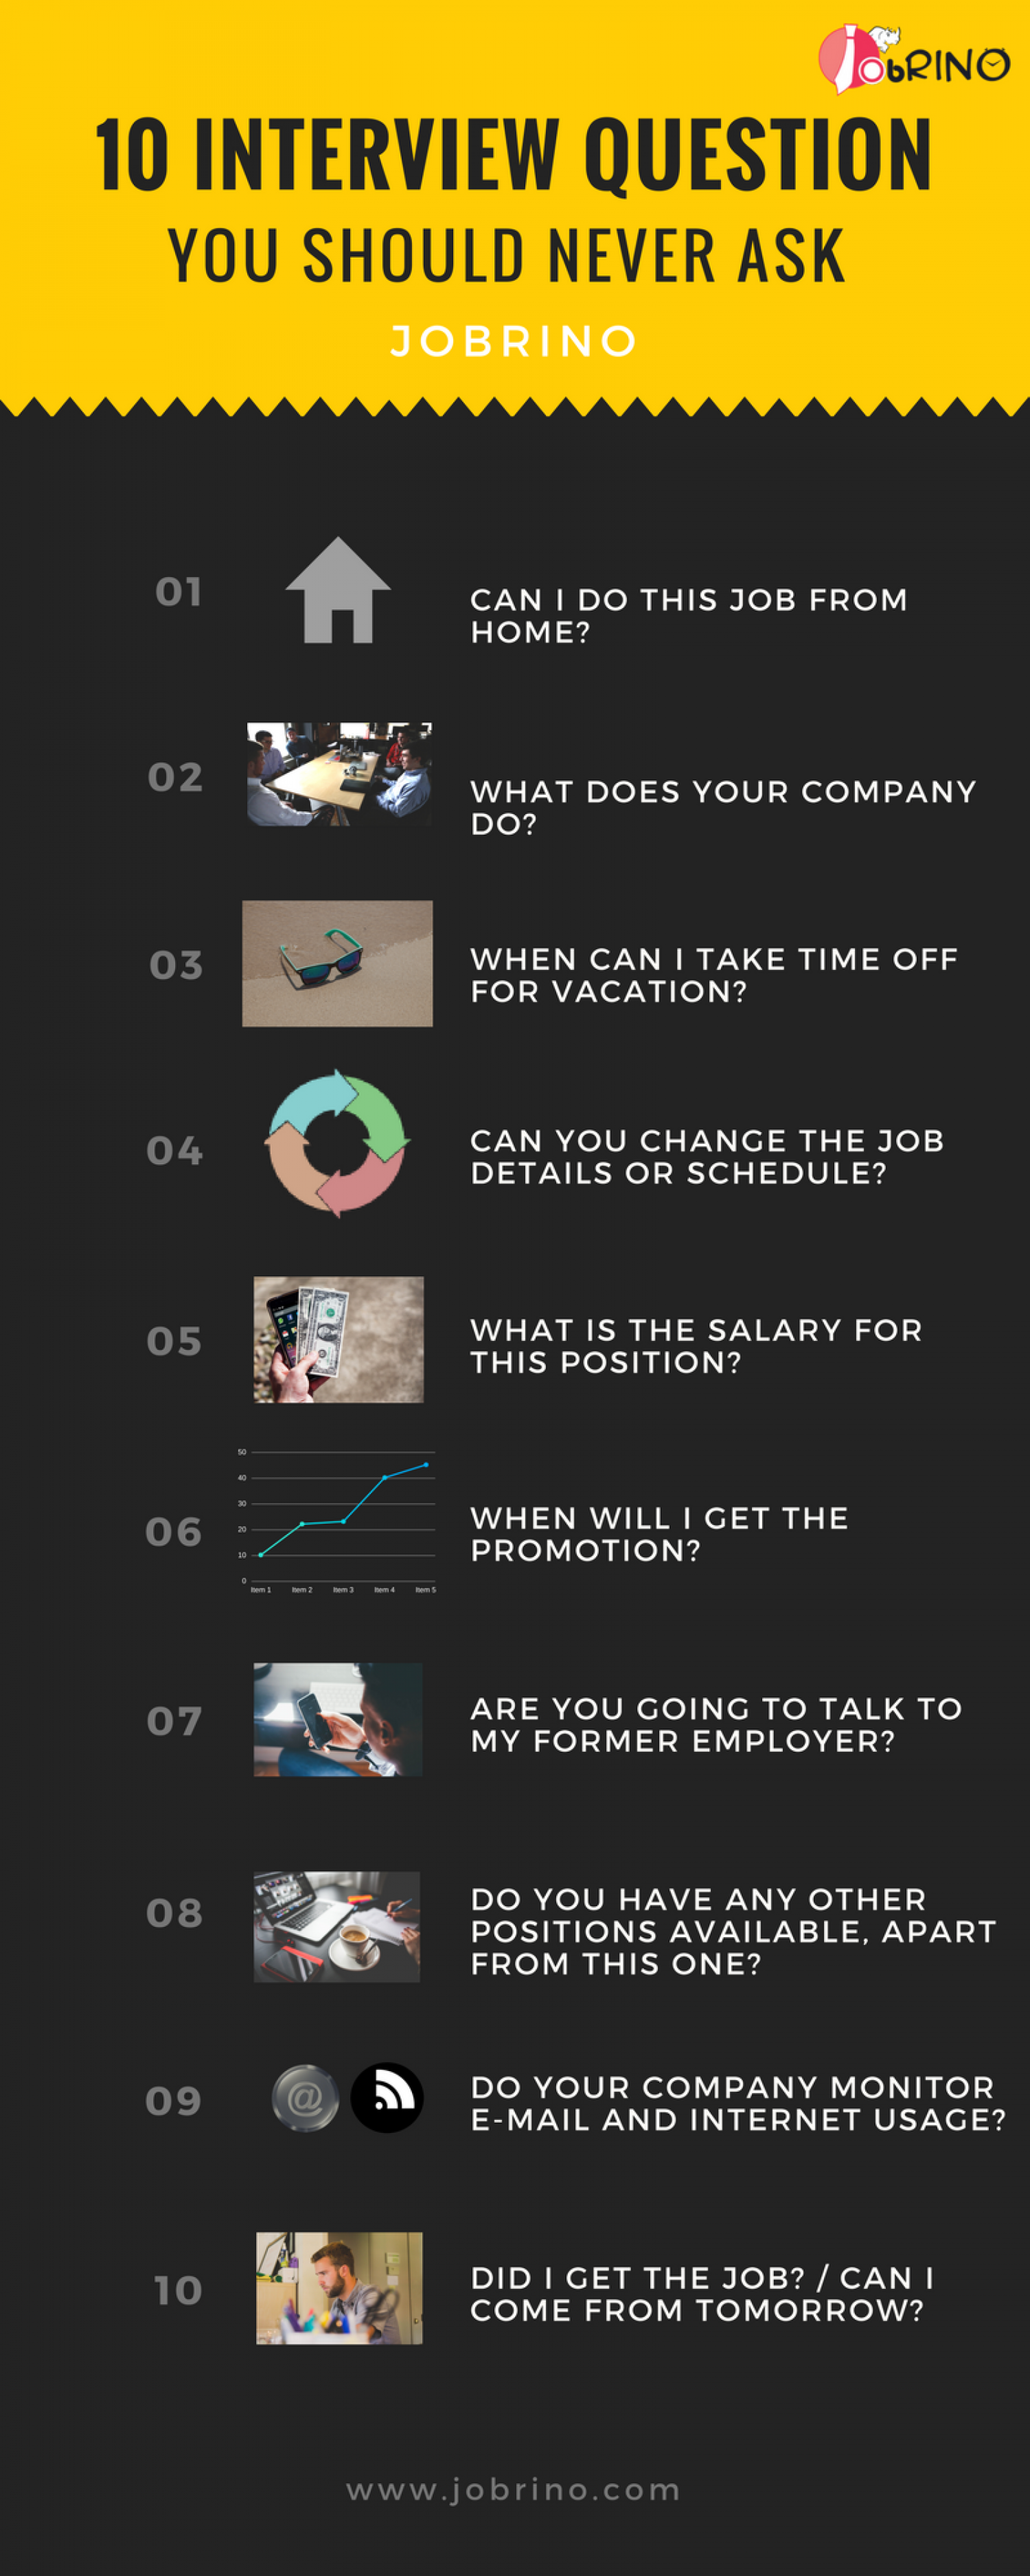 How to introduce yourself in a job interview - JobRino Infographic